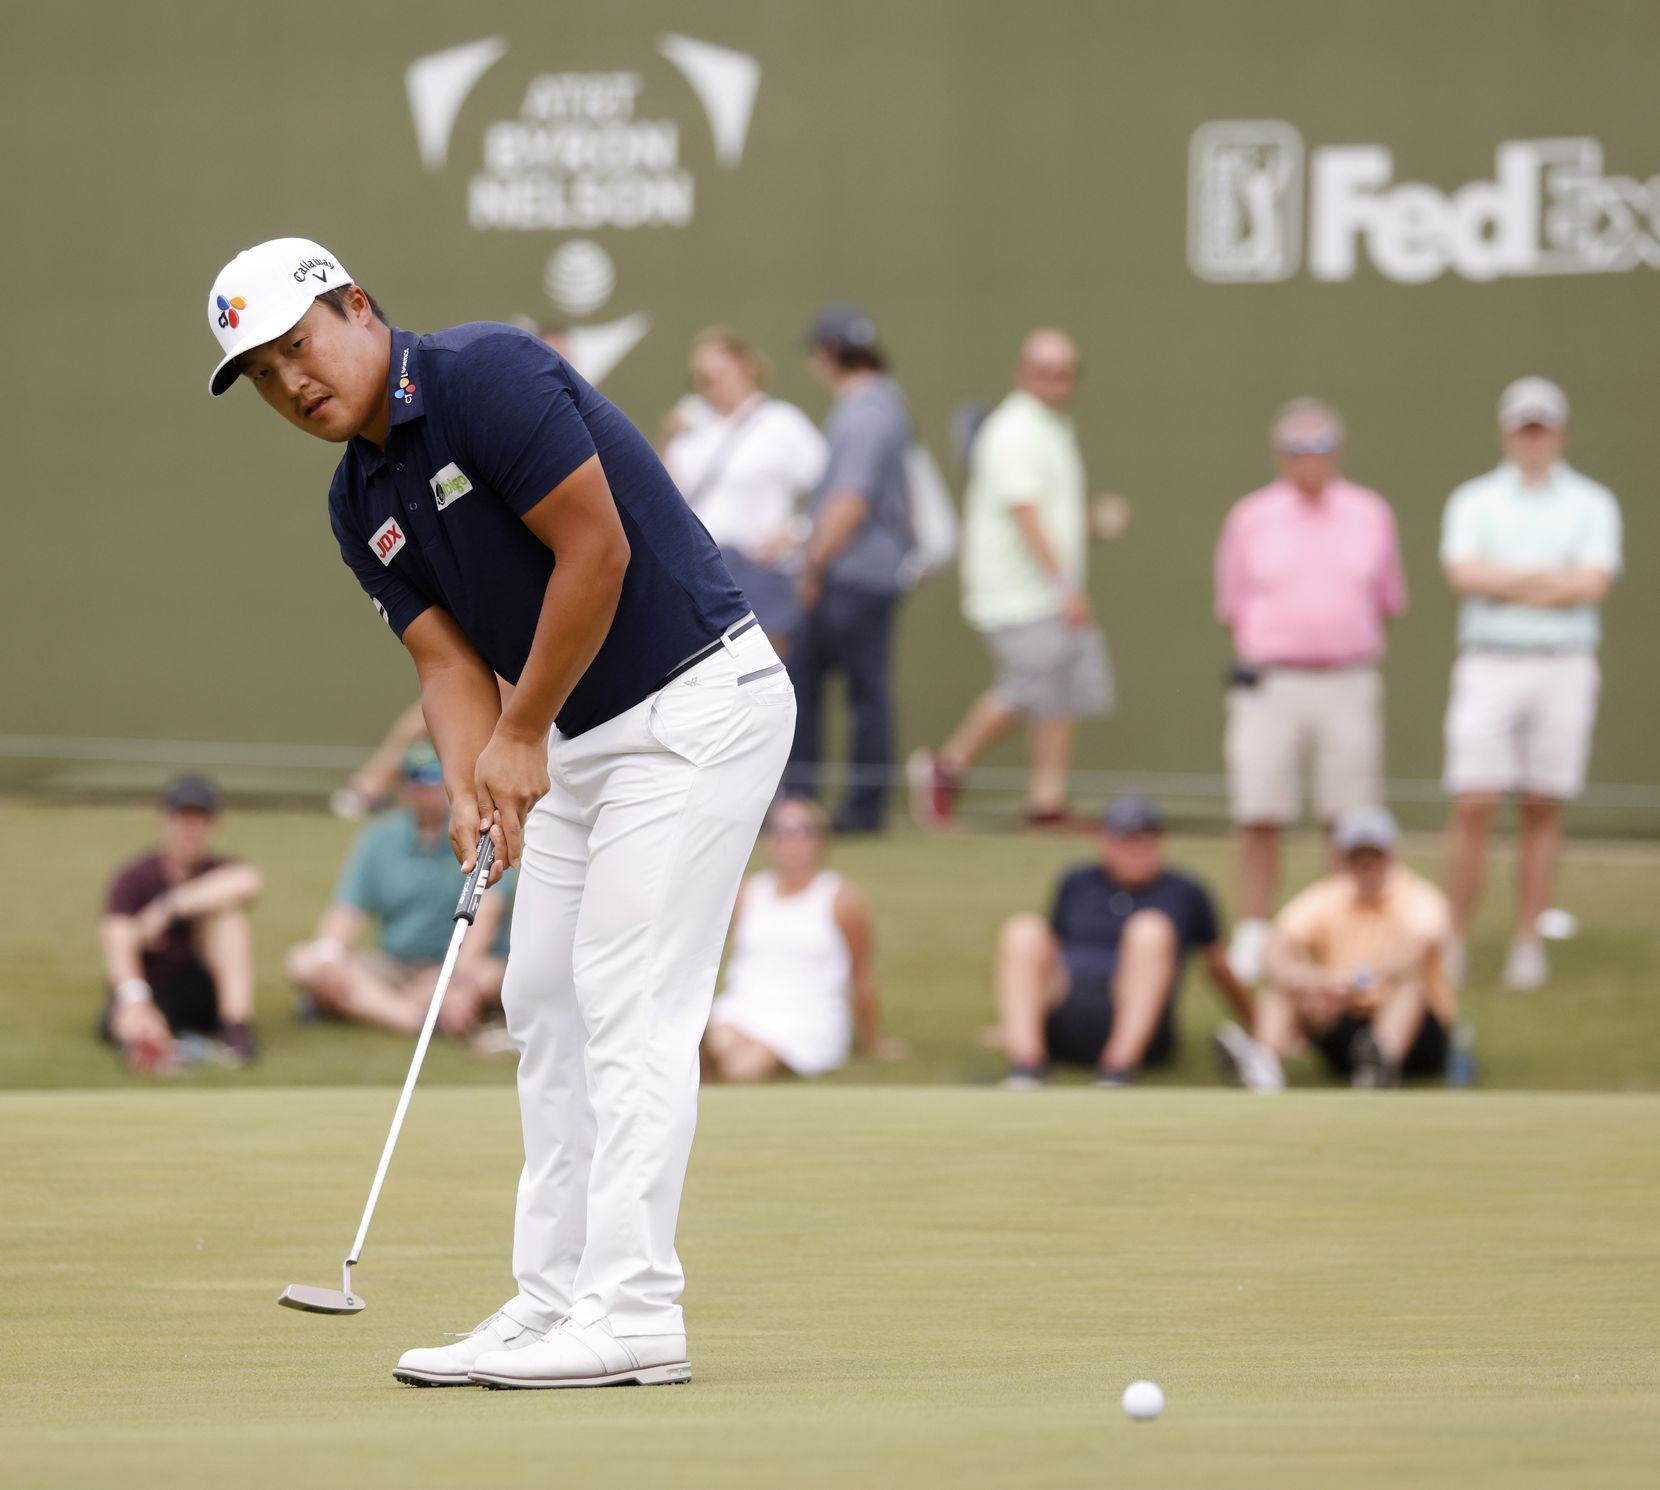 Kyoung-Hoon Lee putts on the 16th hole during round 3 of the AT&T Byron Nelson  at TPC Craig Ranch on Saturday, May 15, 2021 in McKinney, Texas. (Vernon Bryant/The Dallas Morning News)